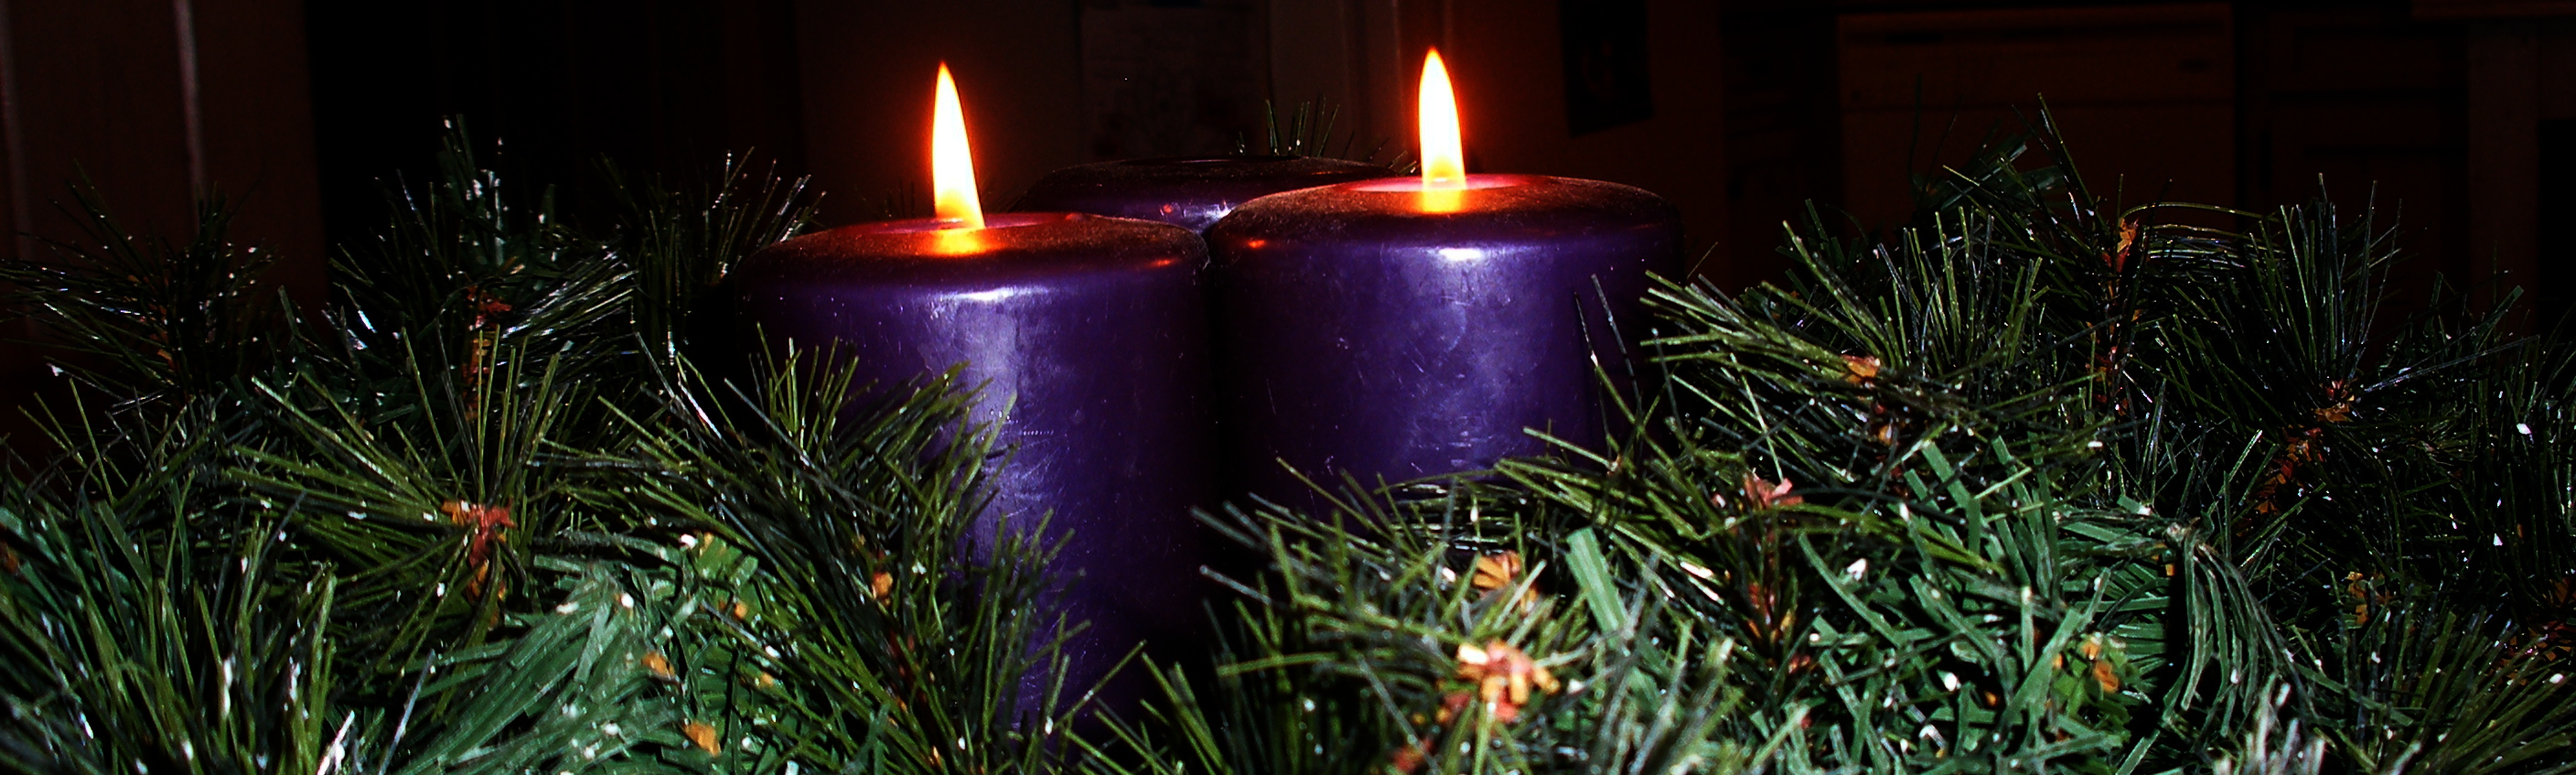 Advent Prayer Service Ideas And Tips